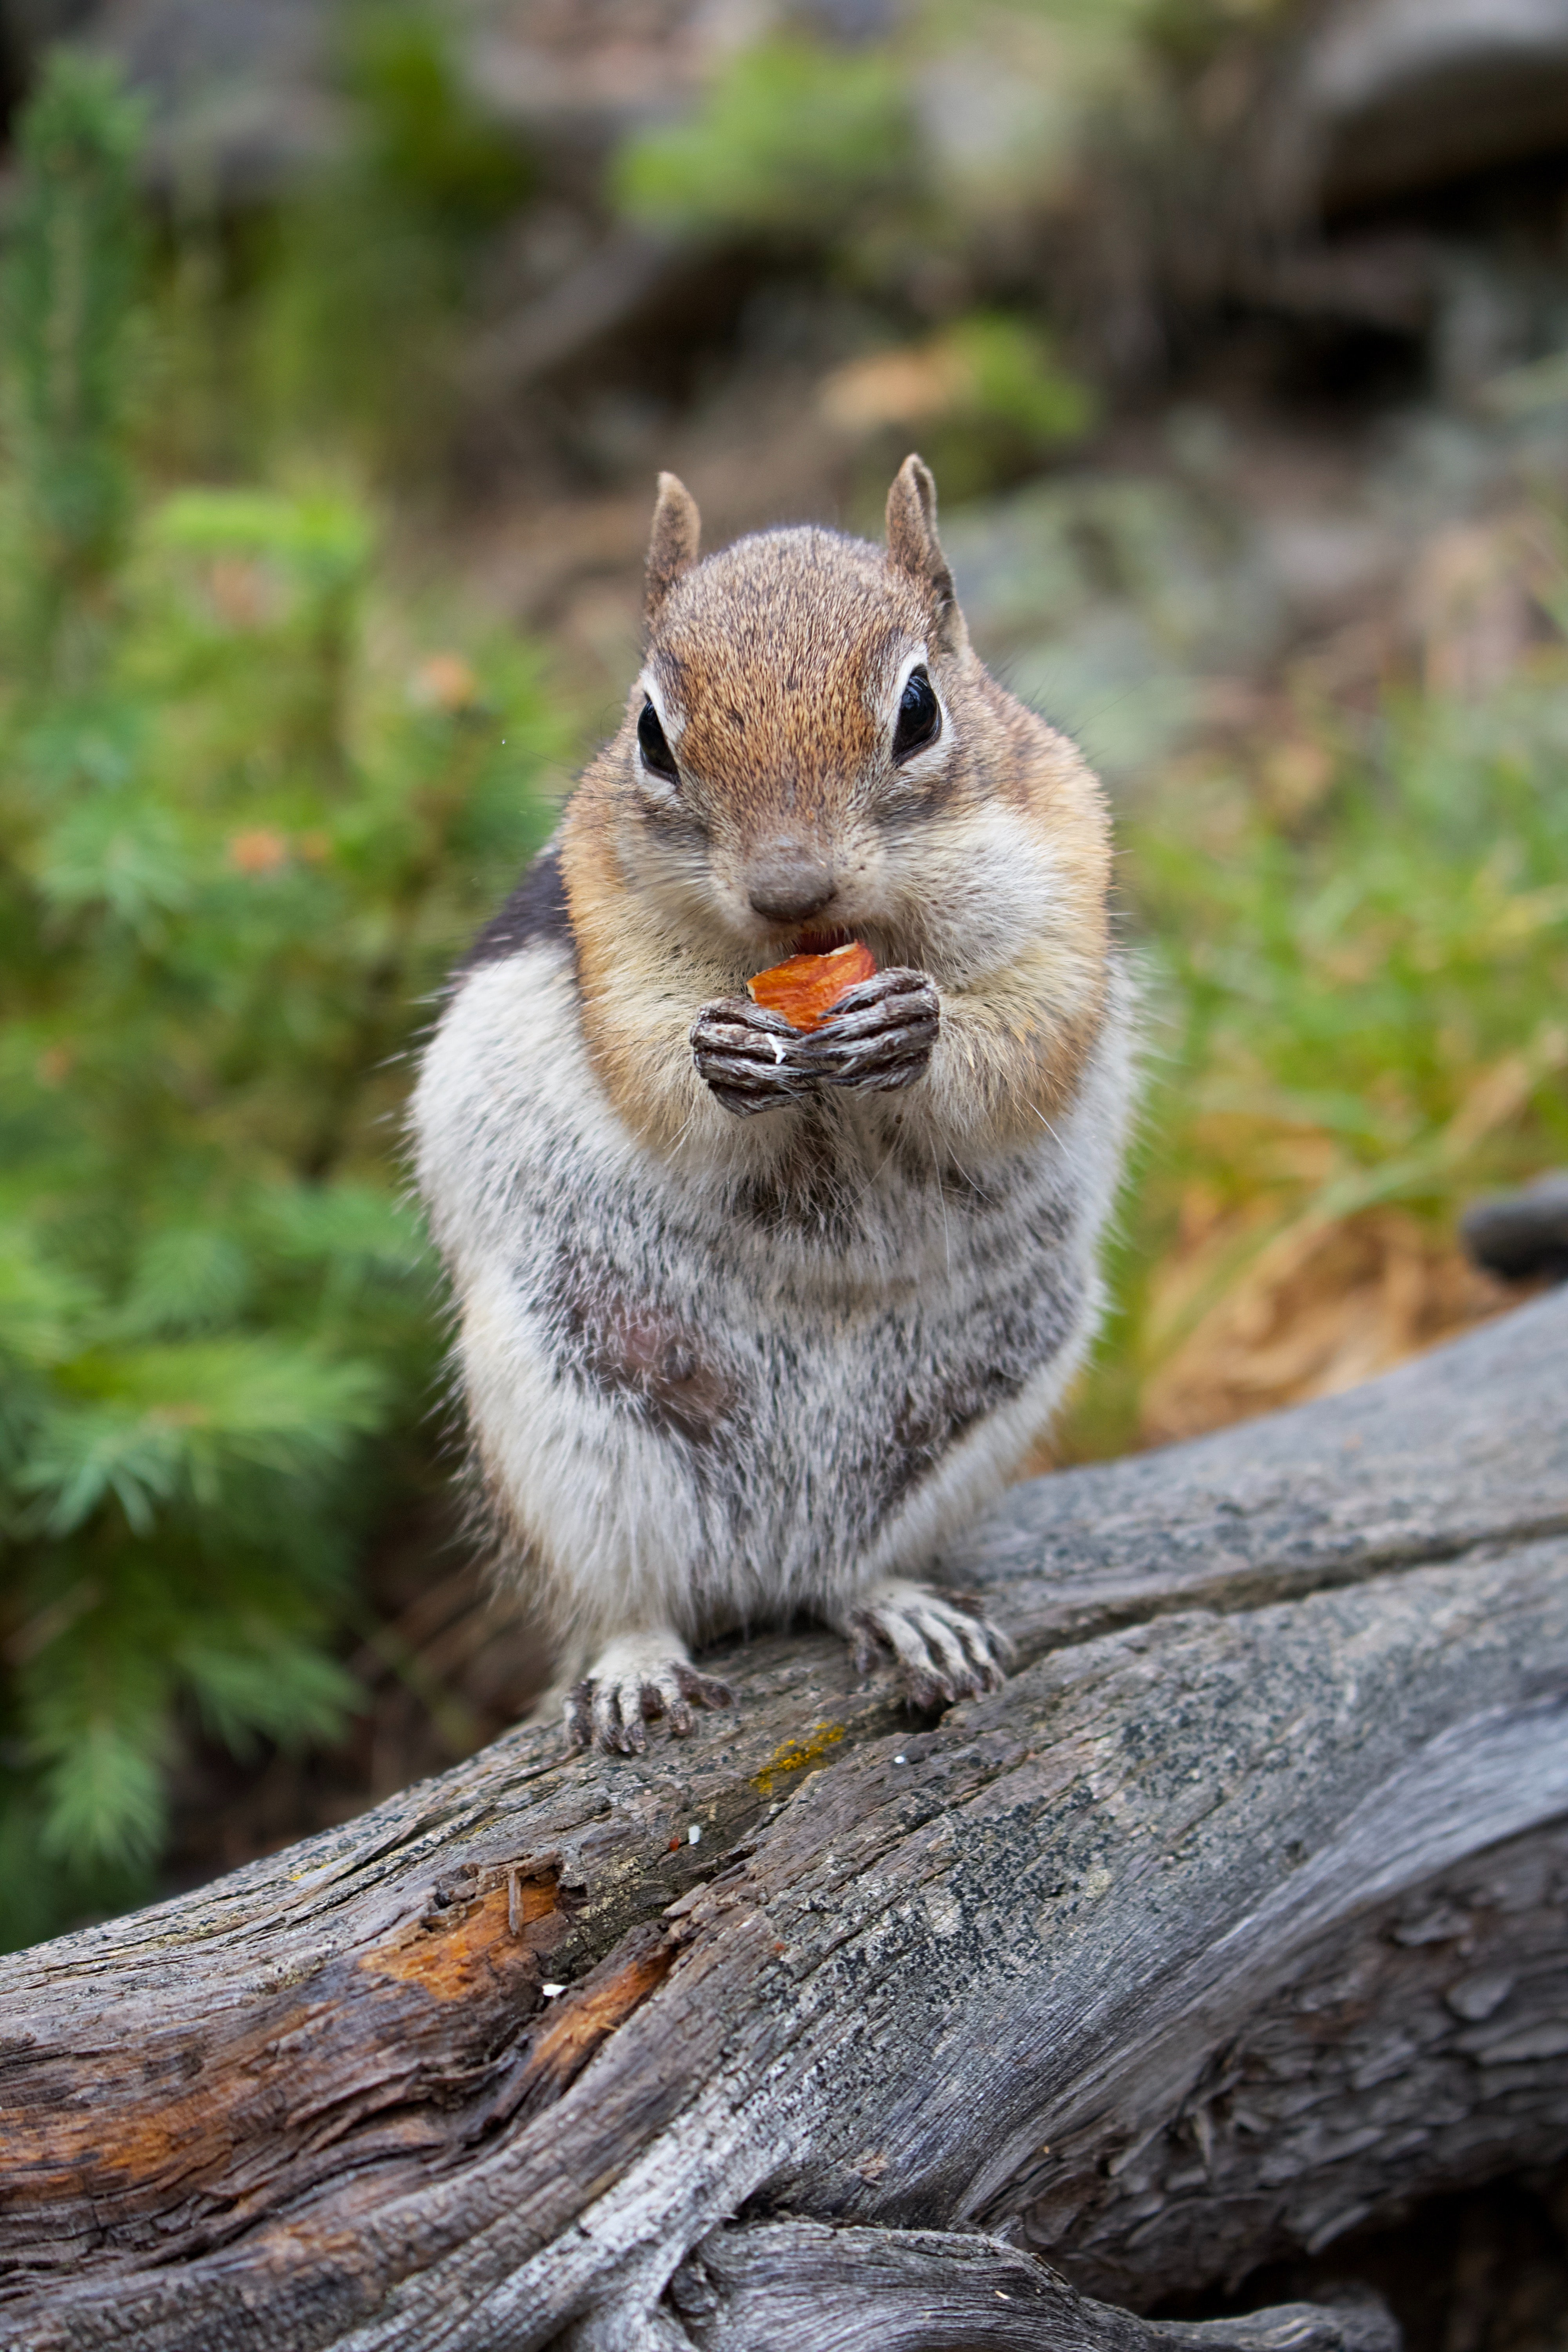 139357 download wallpaper Animals, Chipmunk, Rodent, Animal, Wood, Tree, Bark screensavers and pictures for free